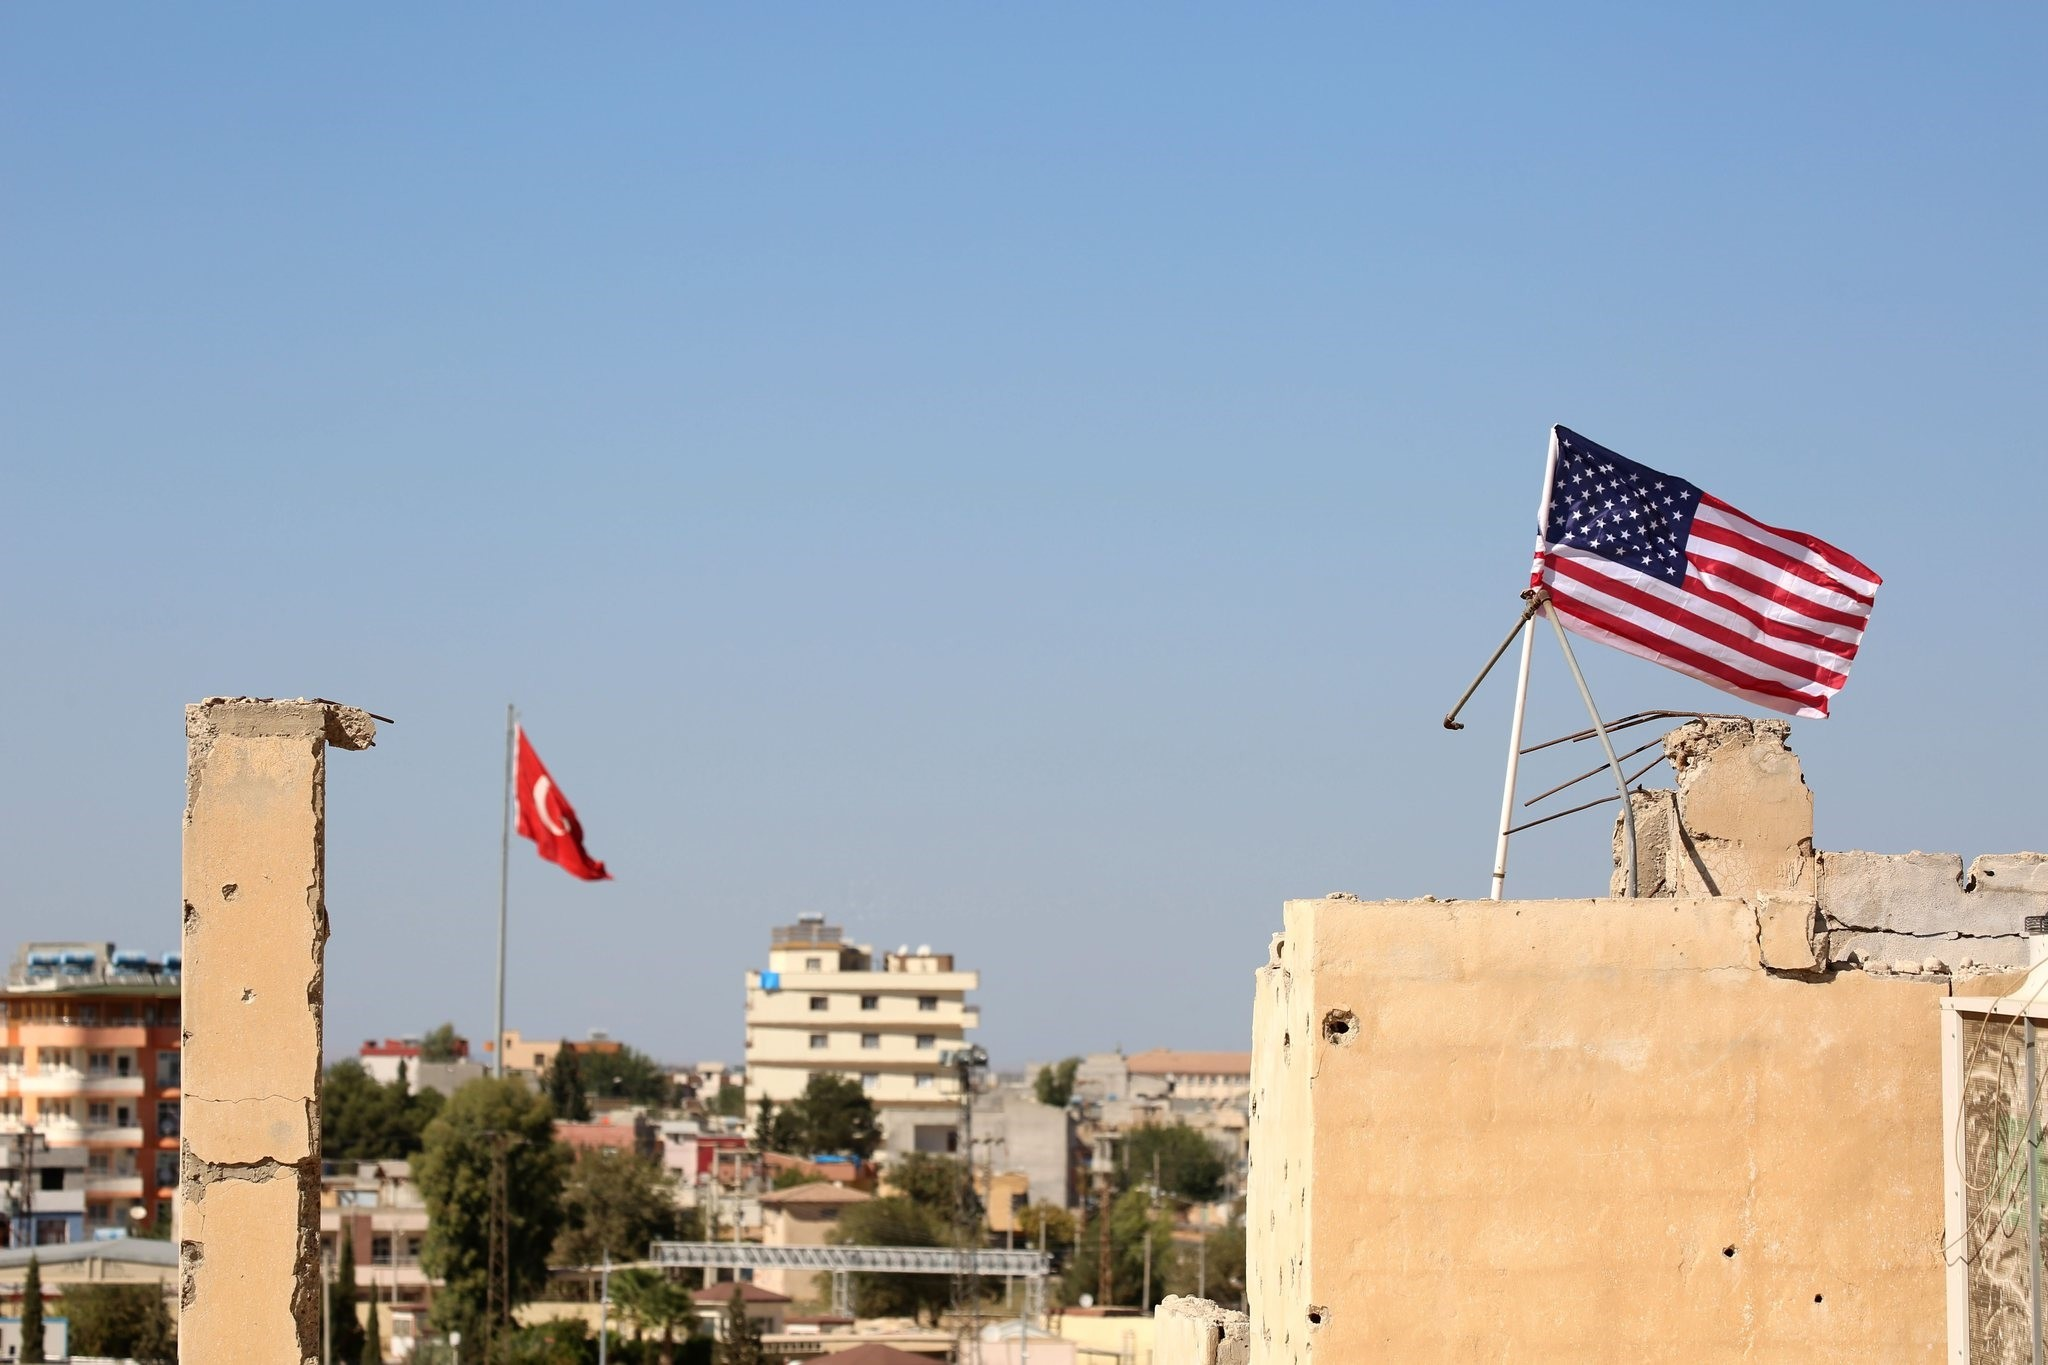 A U.S. flag fluttering above a building used by PYD forces in Tal Abyad, Syria on the border with Turkey, where a Turkish flag can be seen in the back, Sept. 17, 2016.